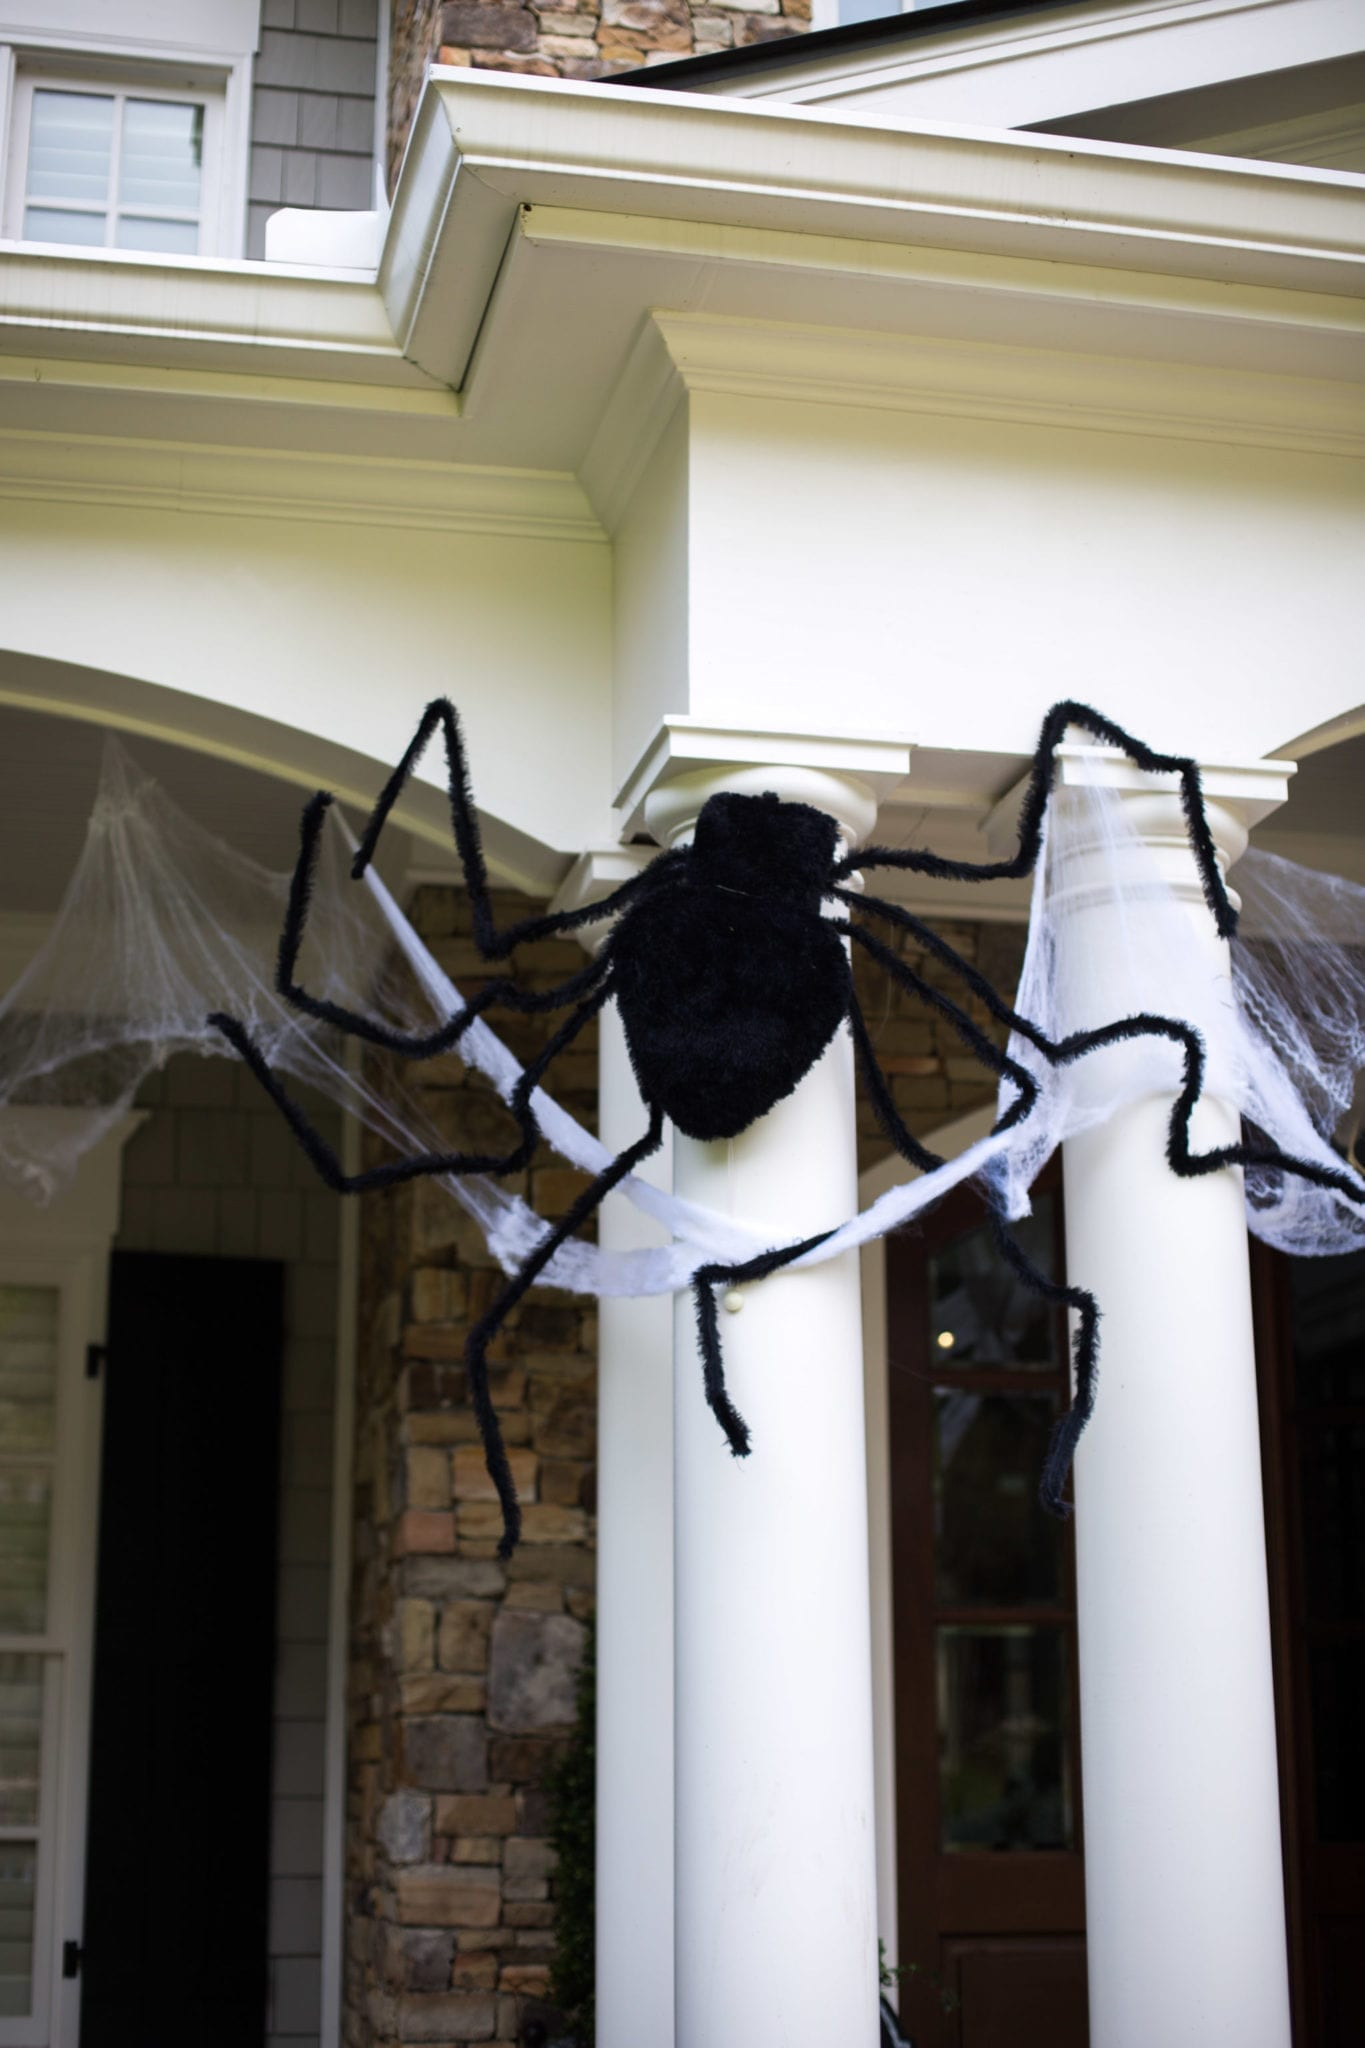 Outdoor spider for decorating your house for Halloween.